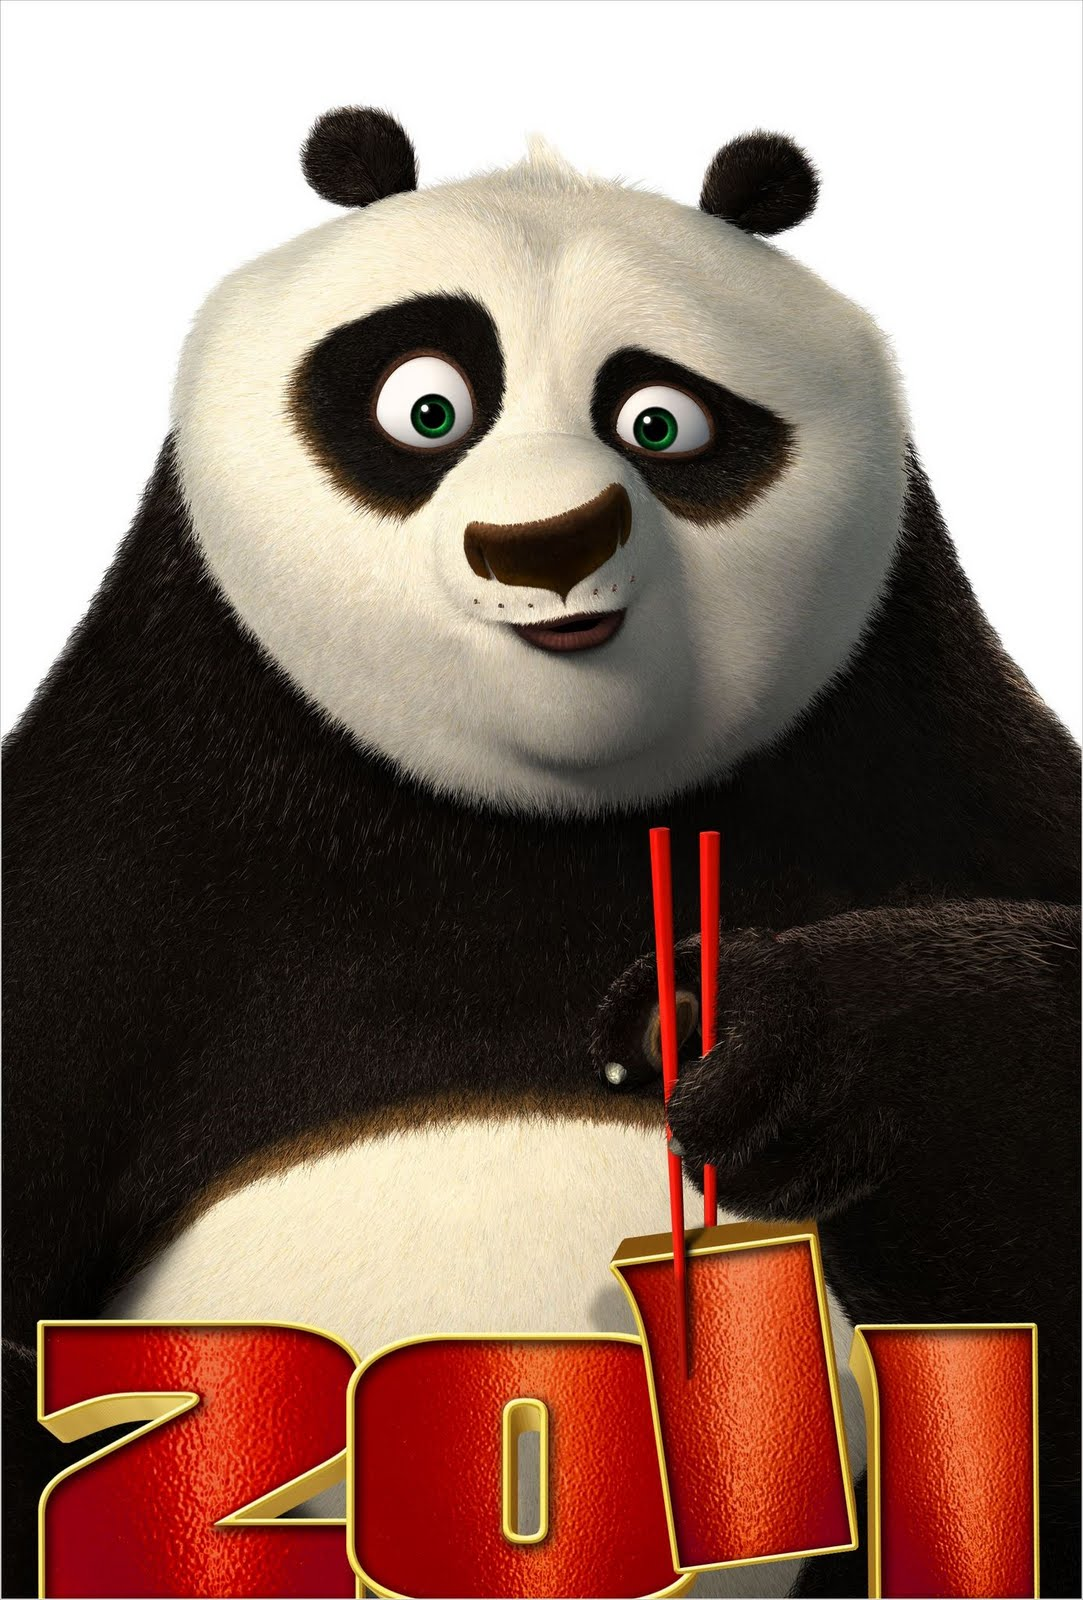 Animation Wallpaper Hd Free Download Kung Fu Panda 2 3d Hd Poster Wallpapers Cartoon Wallpapers